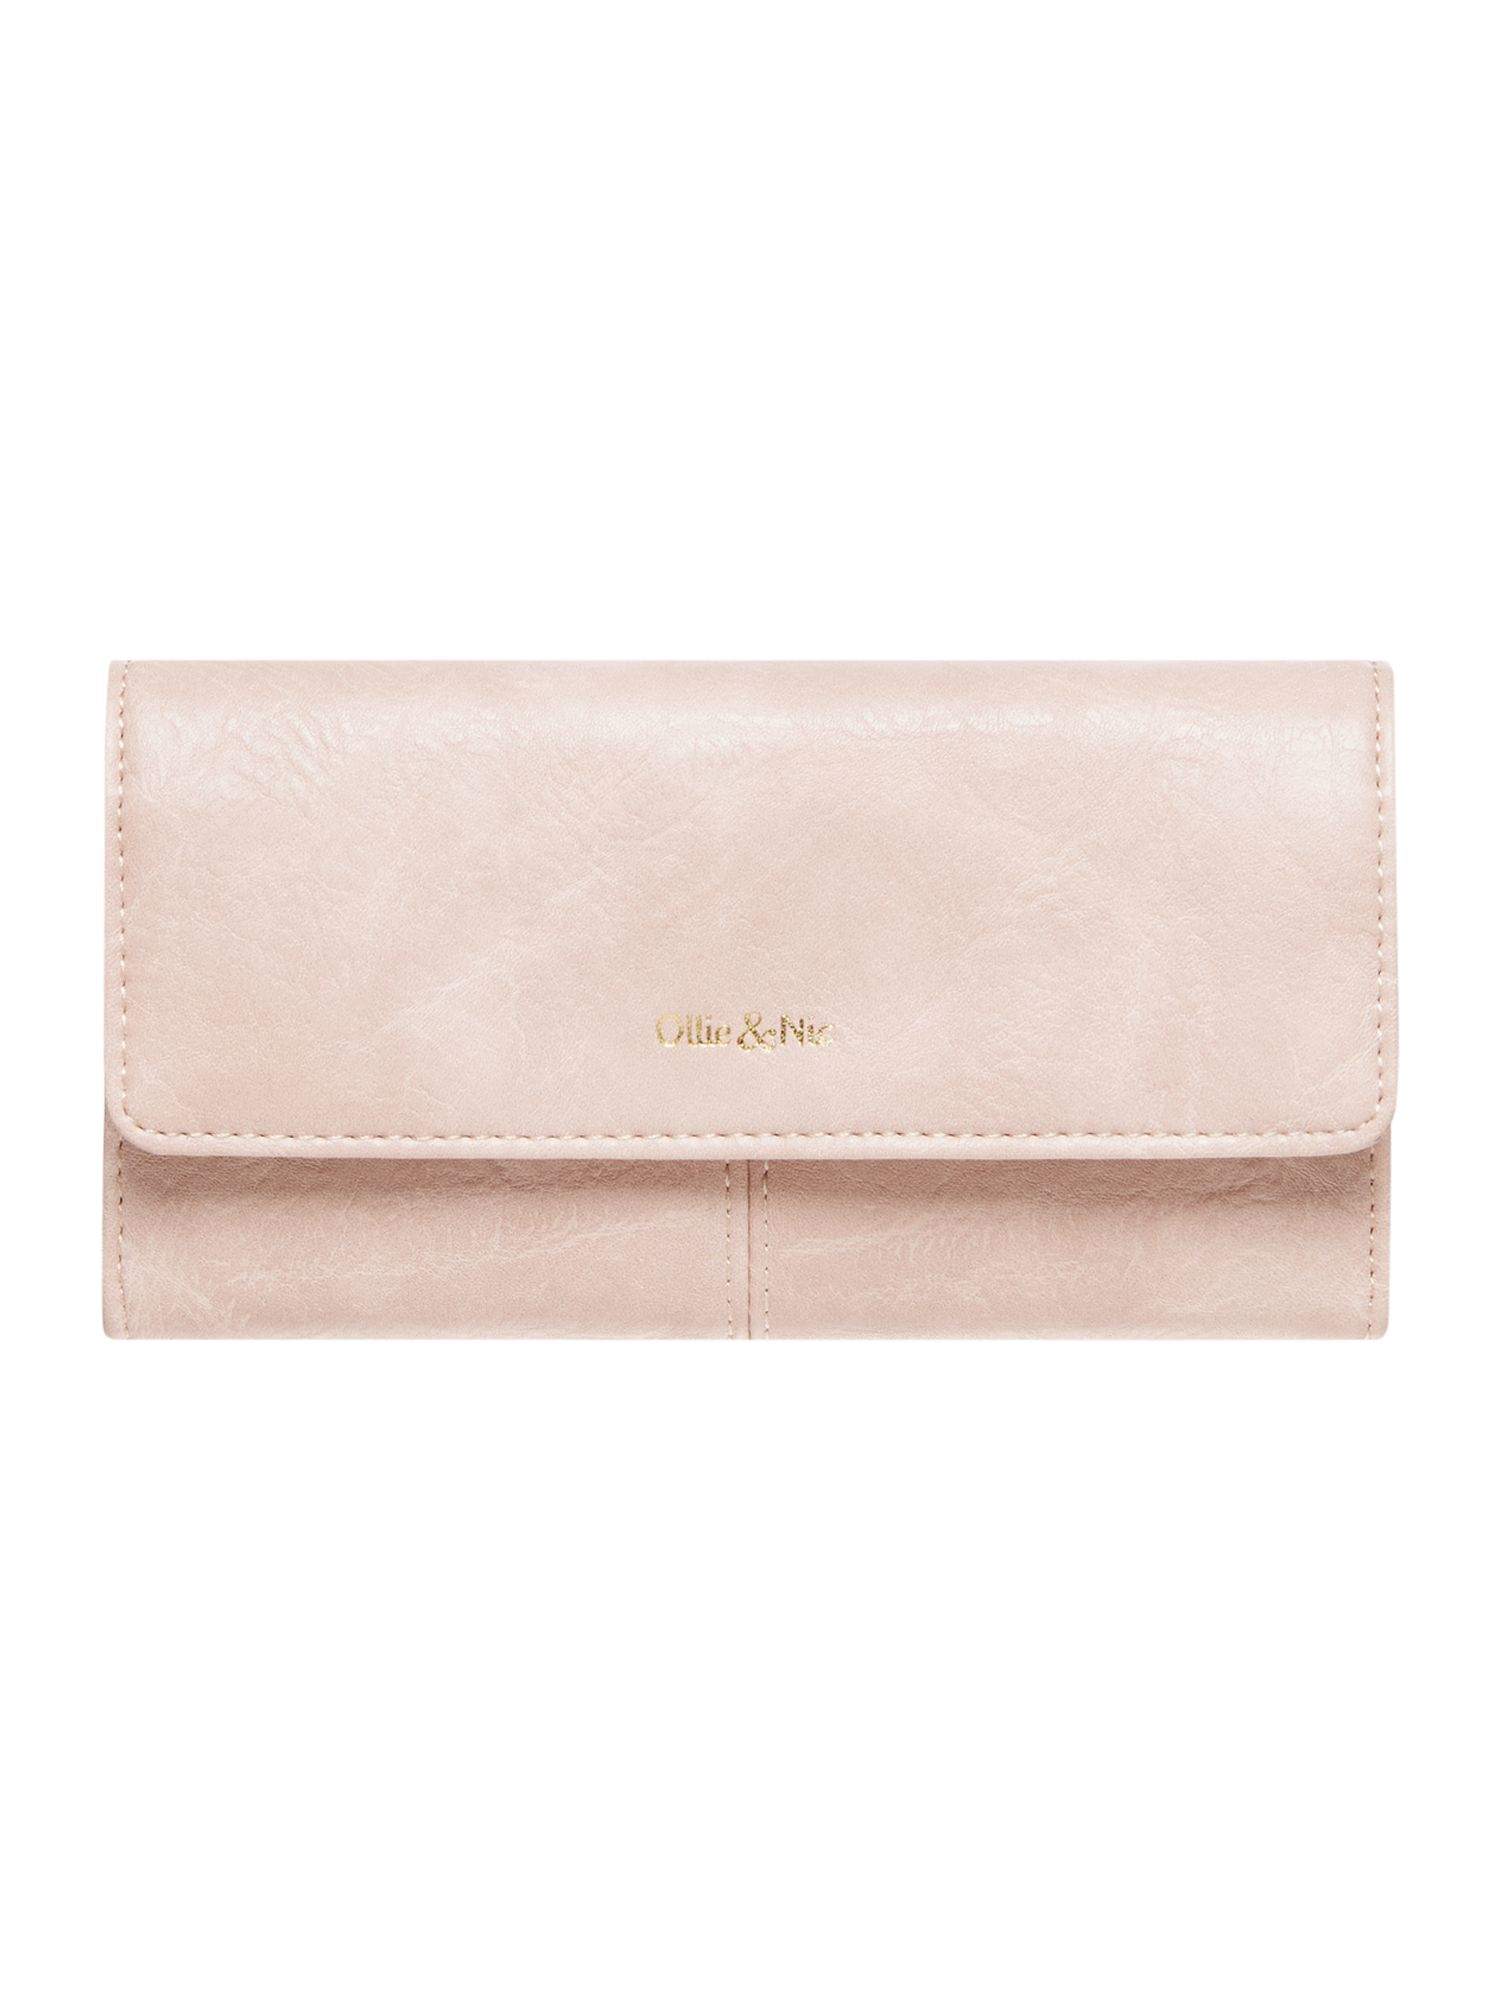 Ollie & Nic Margo flapover purse, Pink